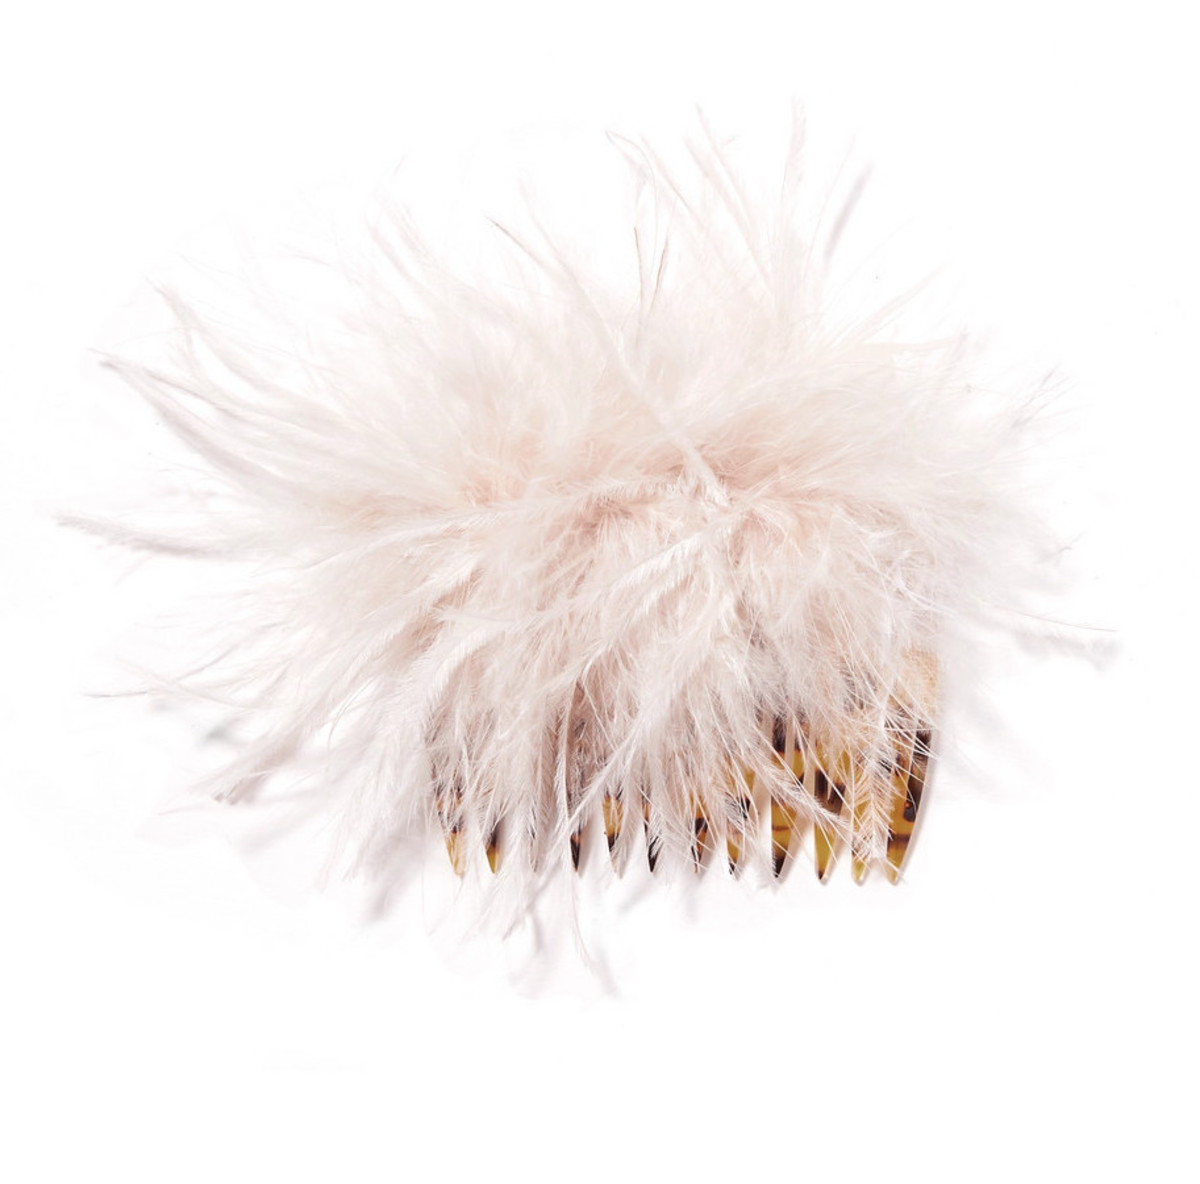 Loeffler Randall Josie Feather-Embellished Hair Comb, $65, available here.